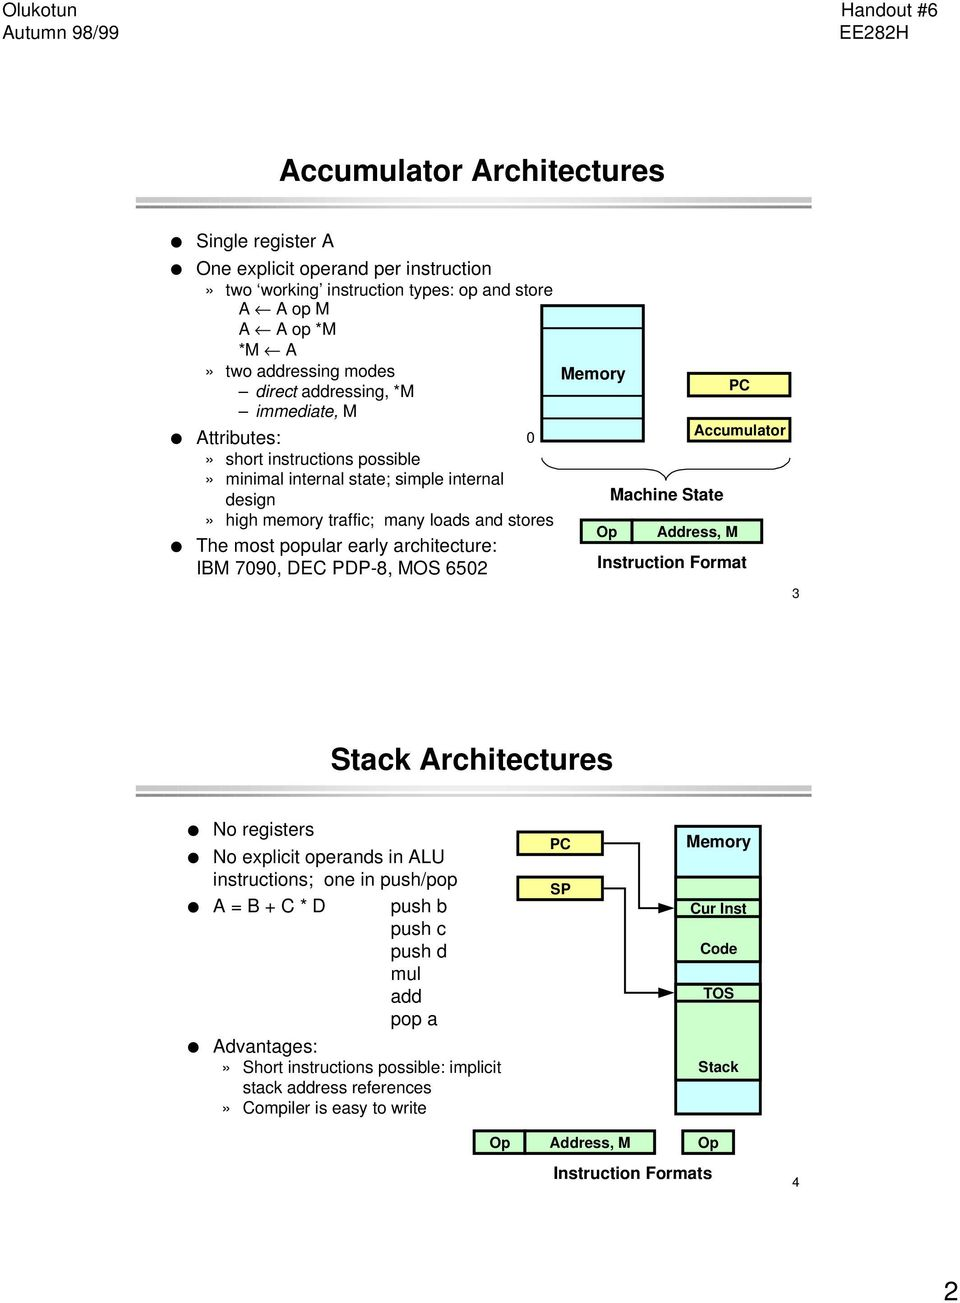 Logic Diagram In Isa Format Instruction Set Architecture Design Classification Categories Pdp 8 Mos 6502 Memory Op Machine State Pc Accumulator Address M